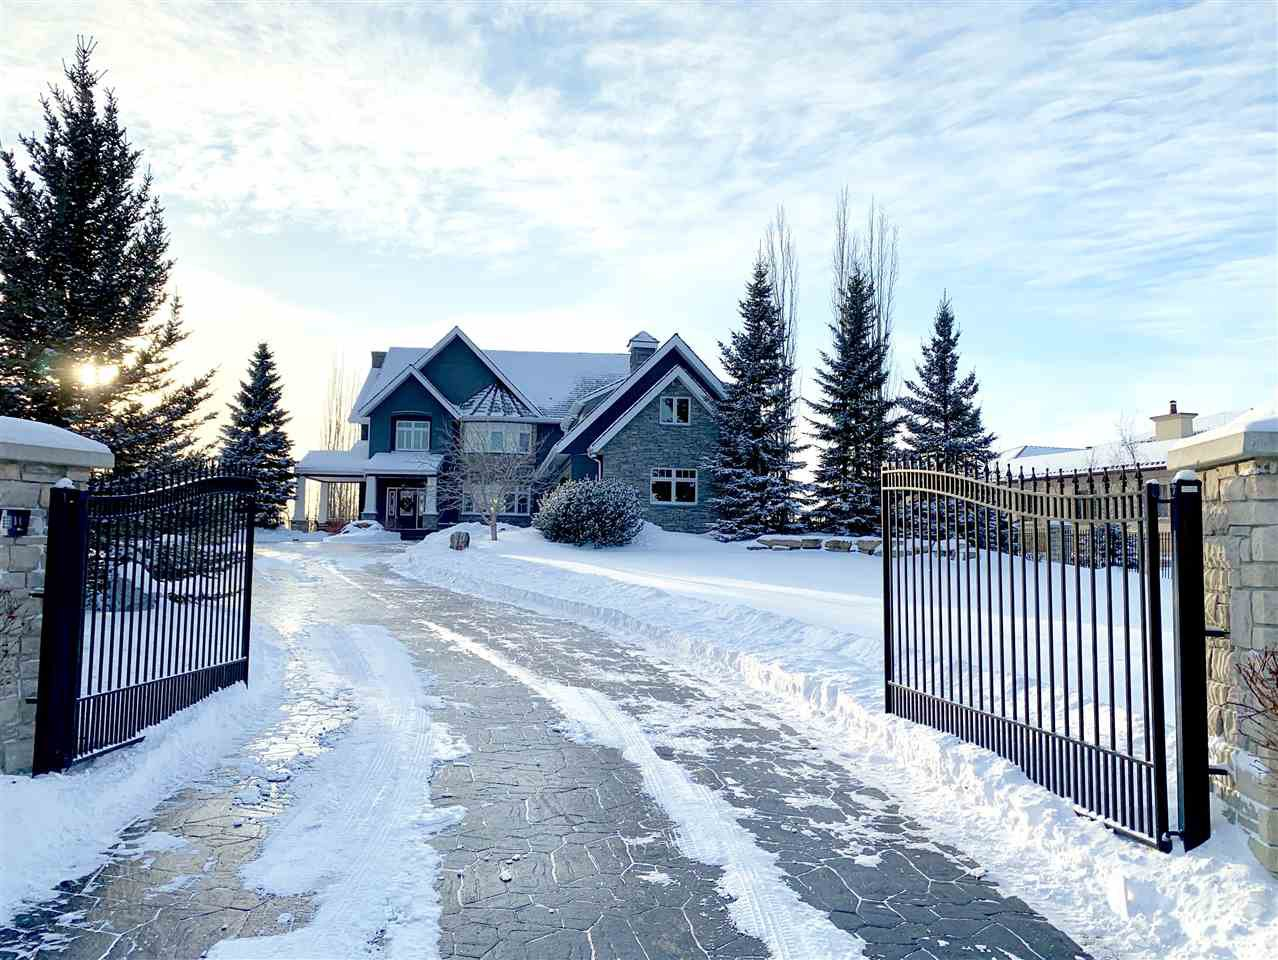 Main Photo: 60 WINDERMERE Drive in Edmonton: Zone 56 House for sale : MLS®# E4177742